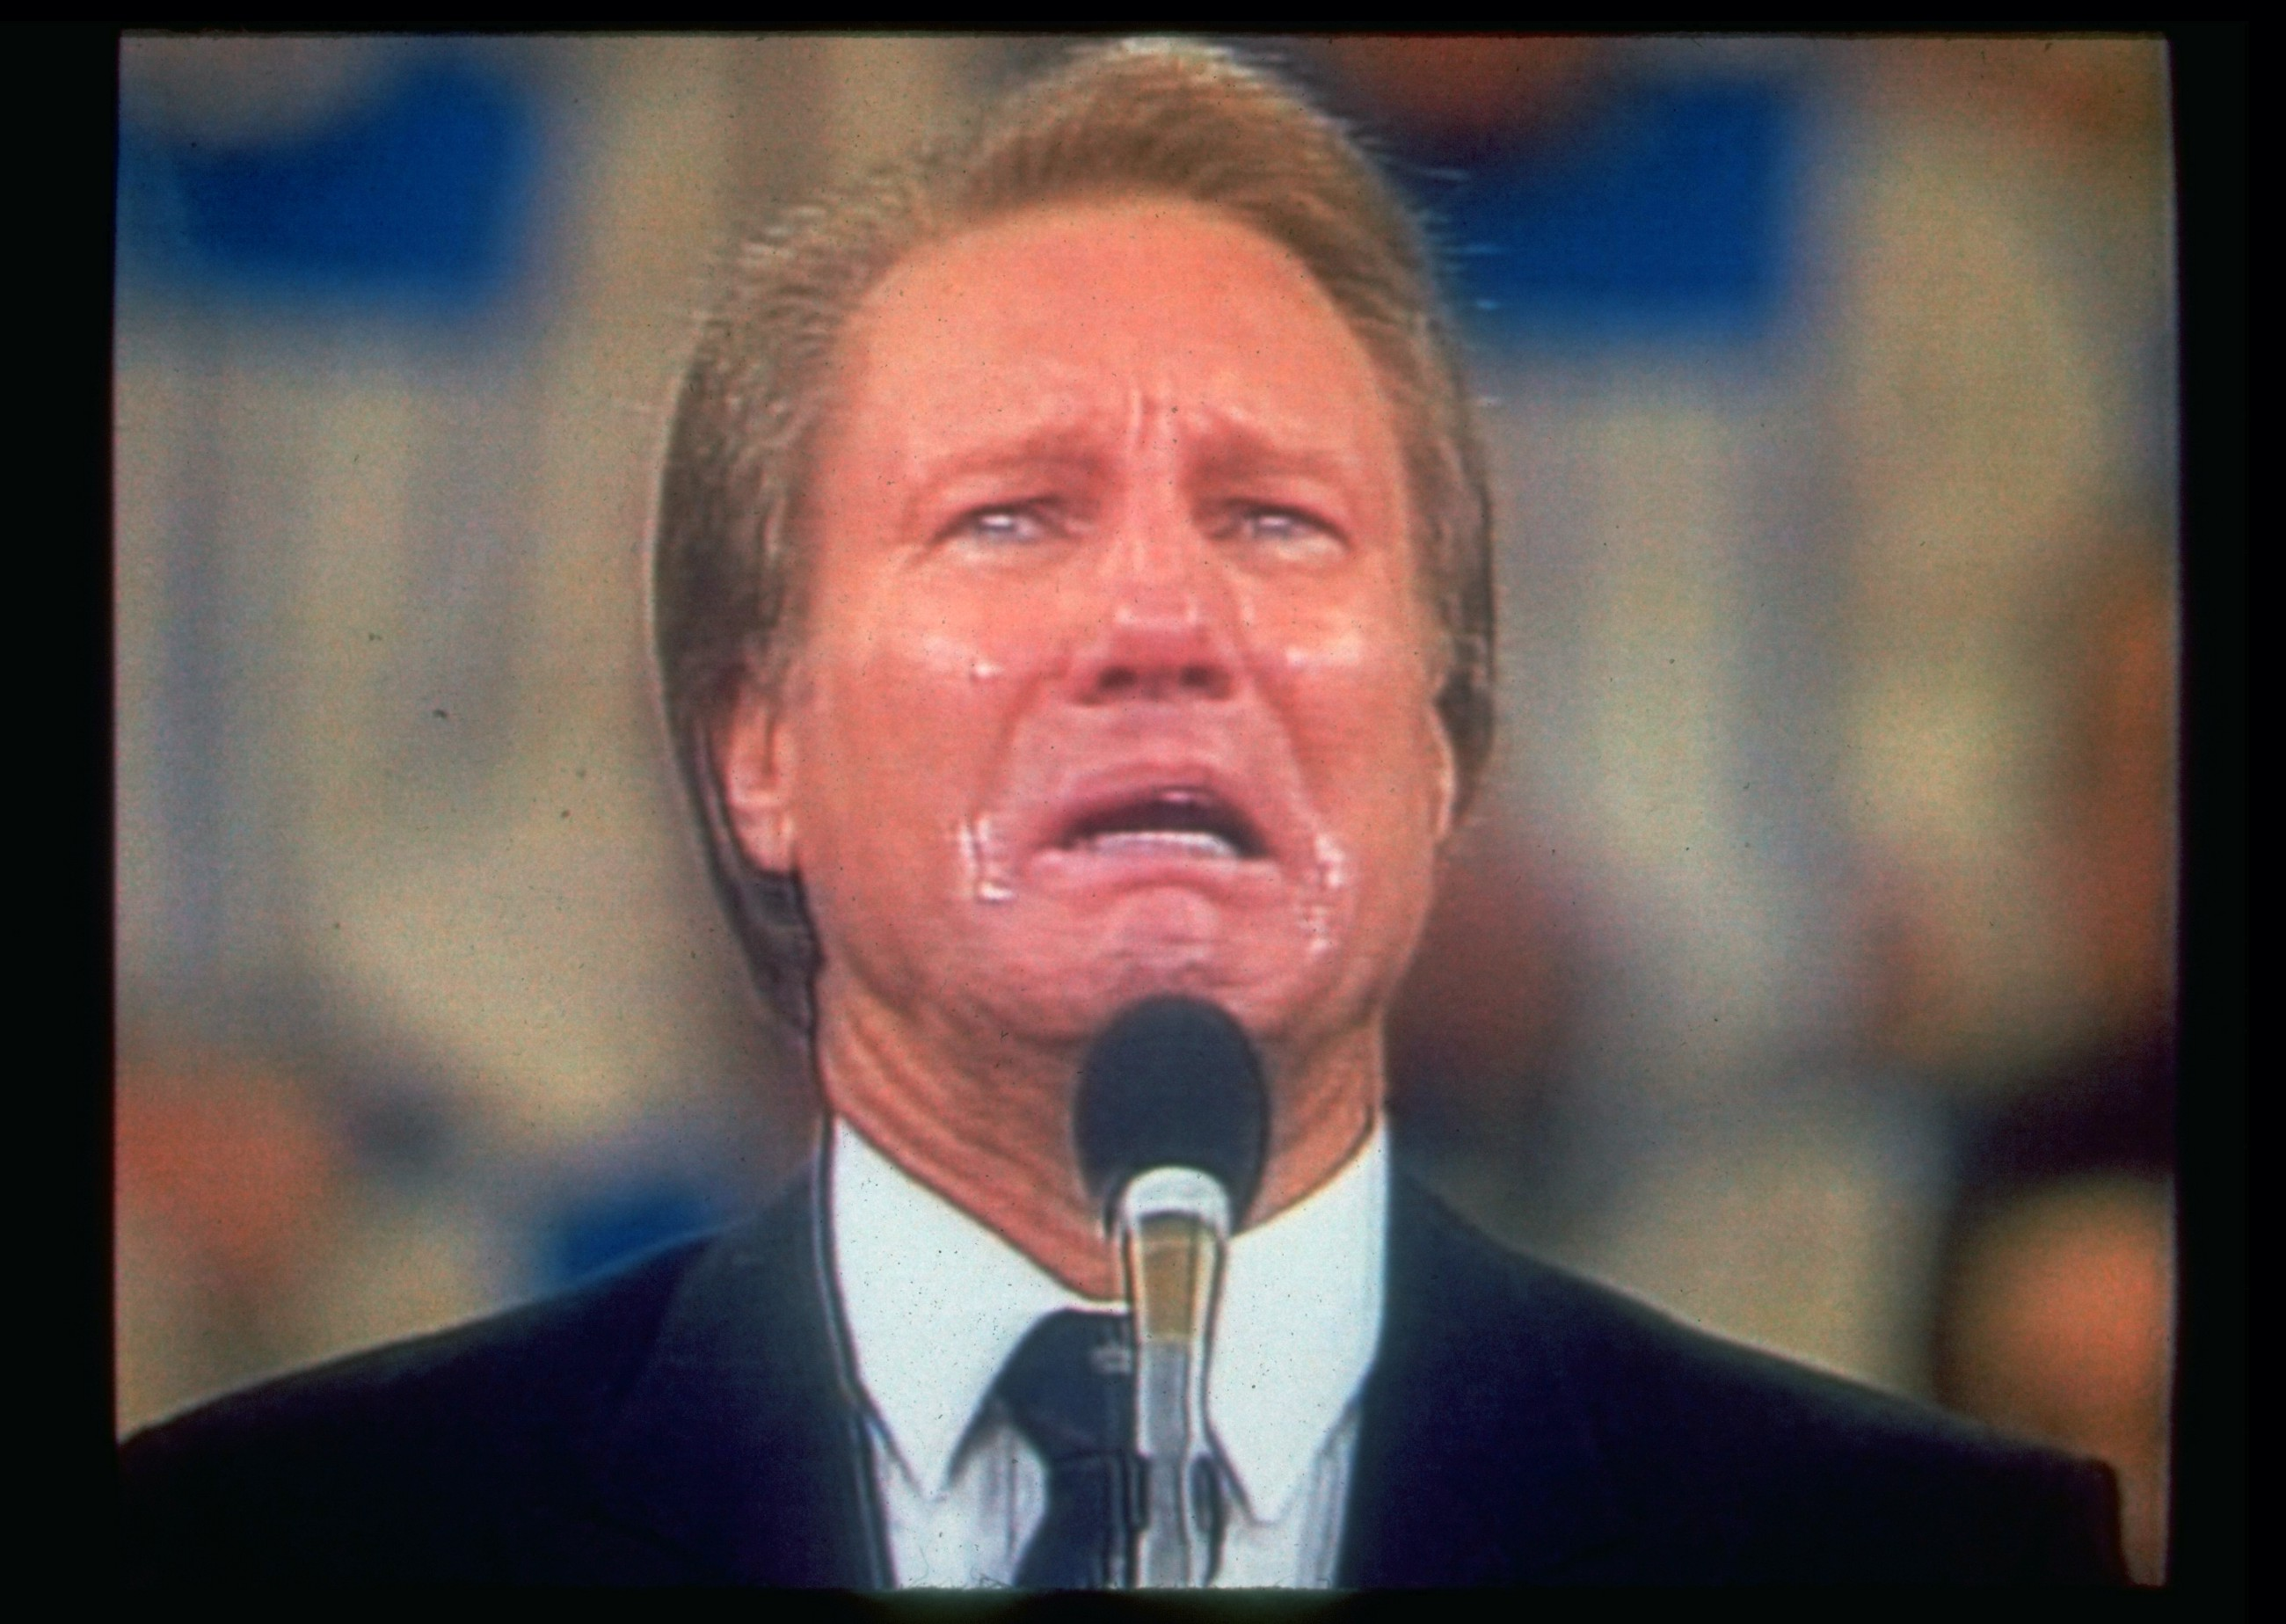 WHEN DID SWAGGART FALL